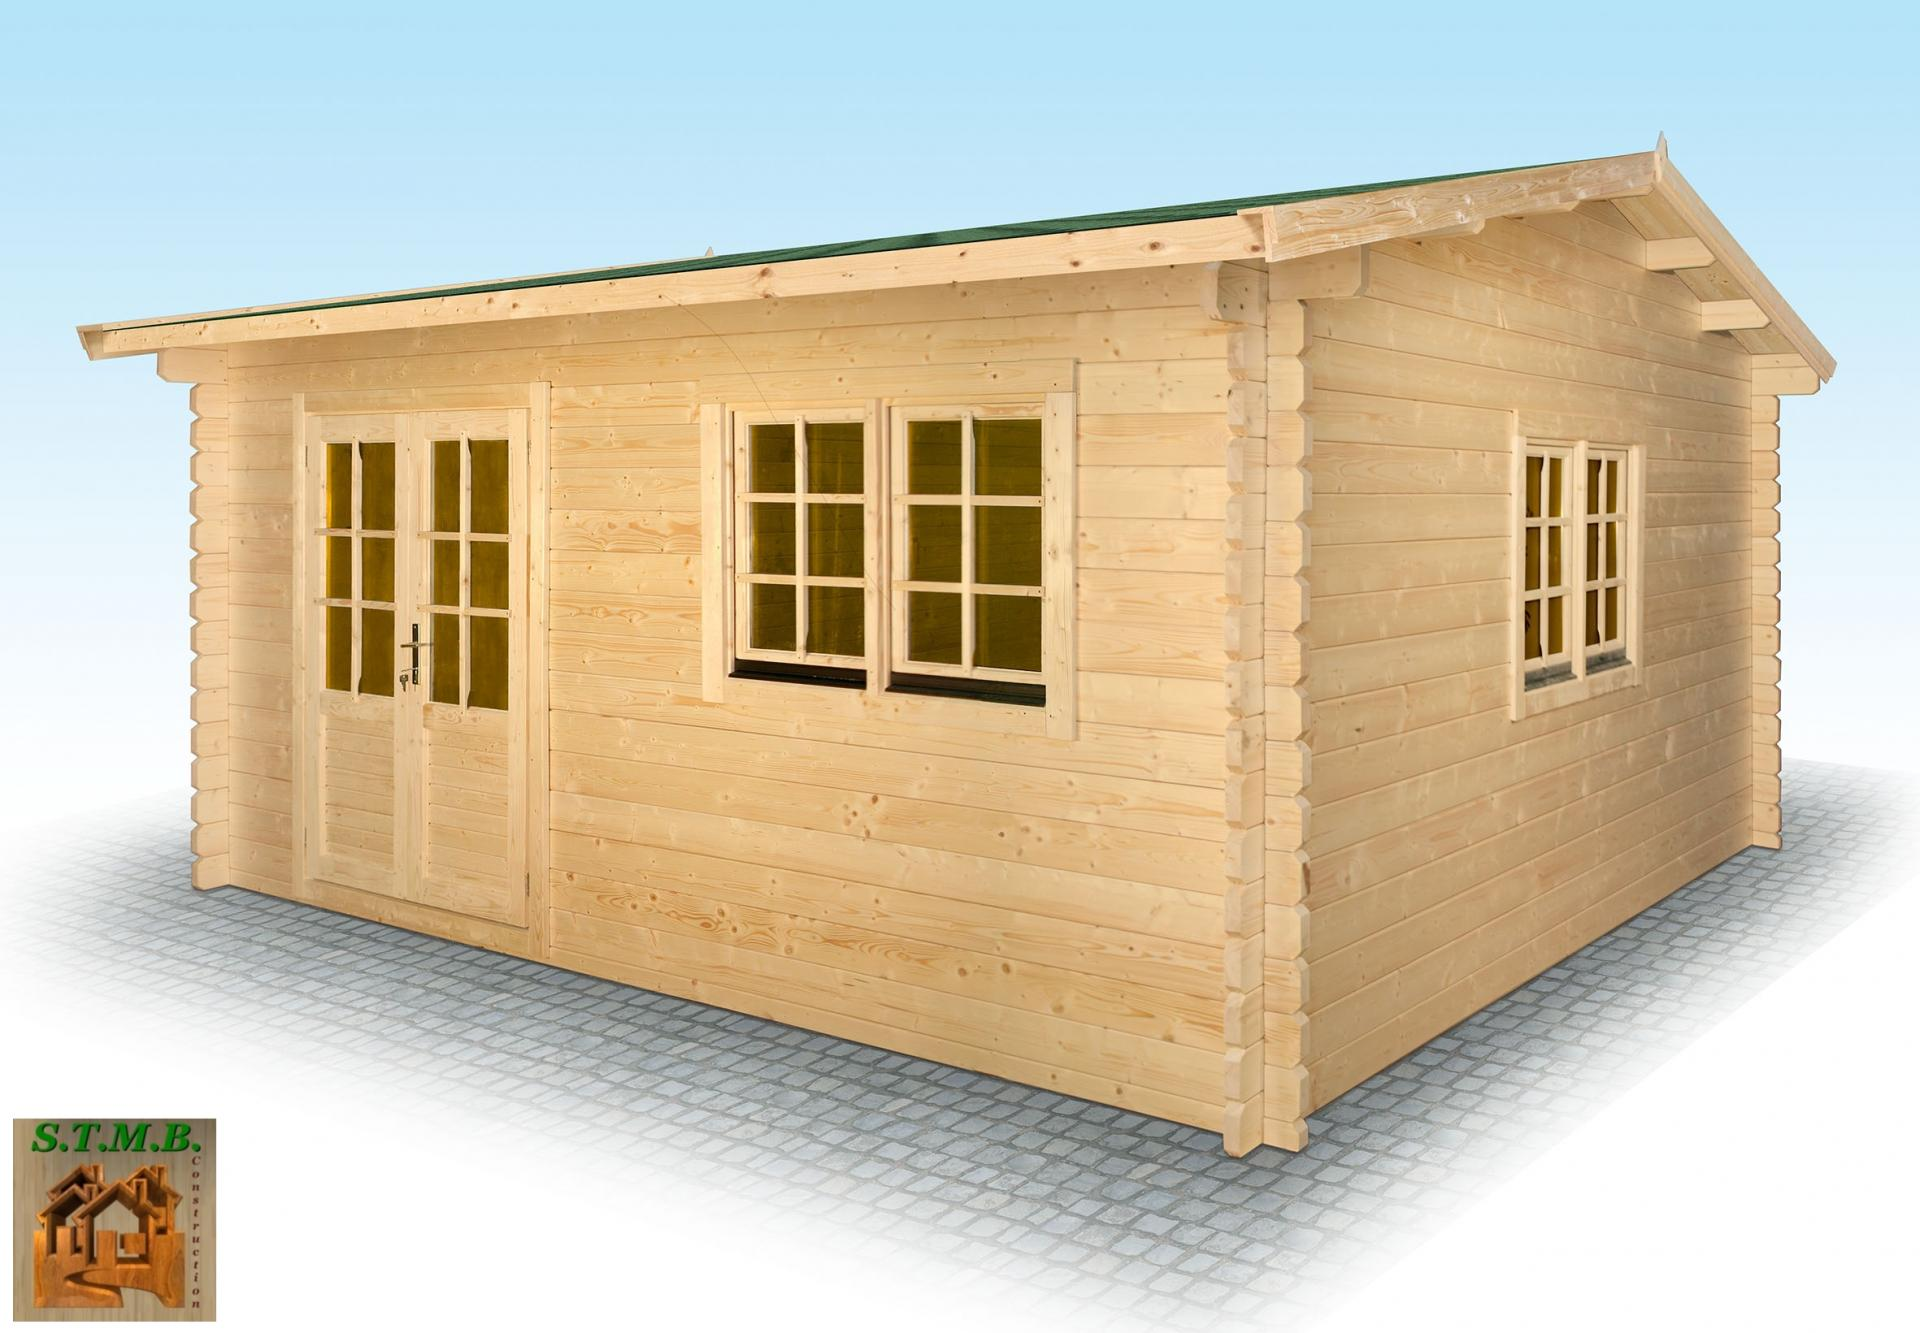 Chalet en bois en kit mod le hiba 25 m2 en madriers de 44 mm for Construction bois 22